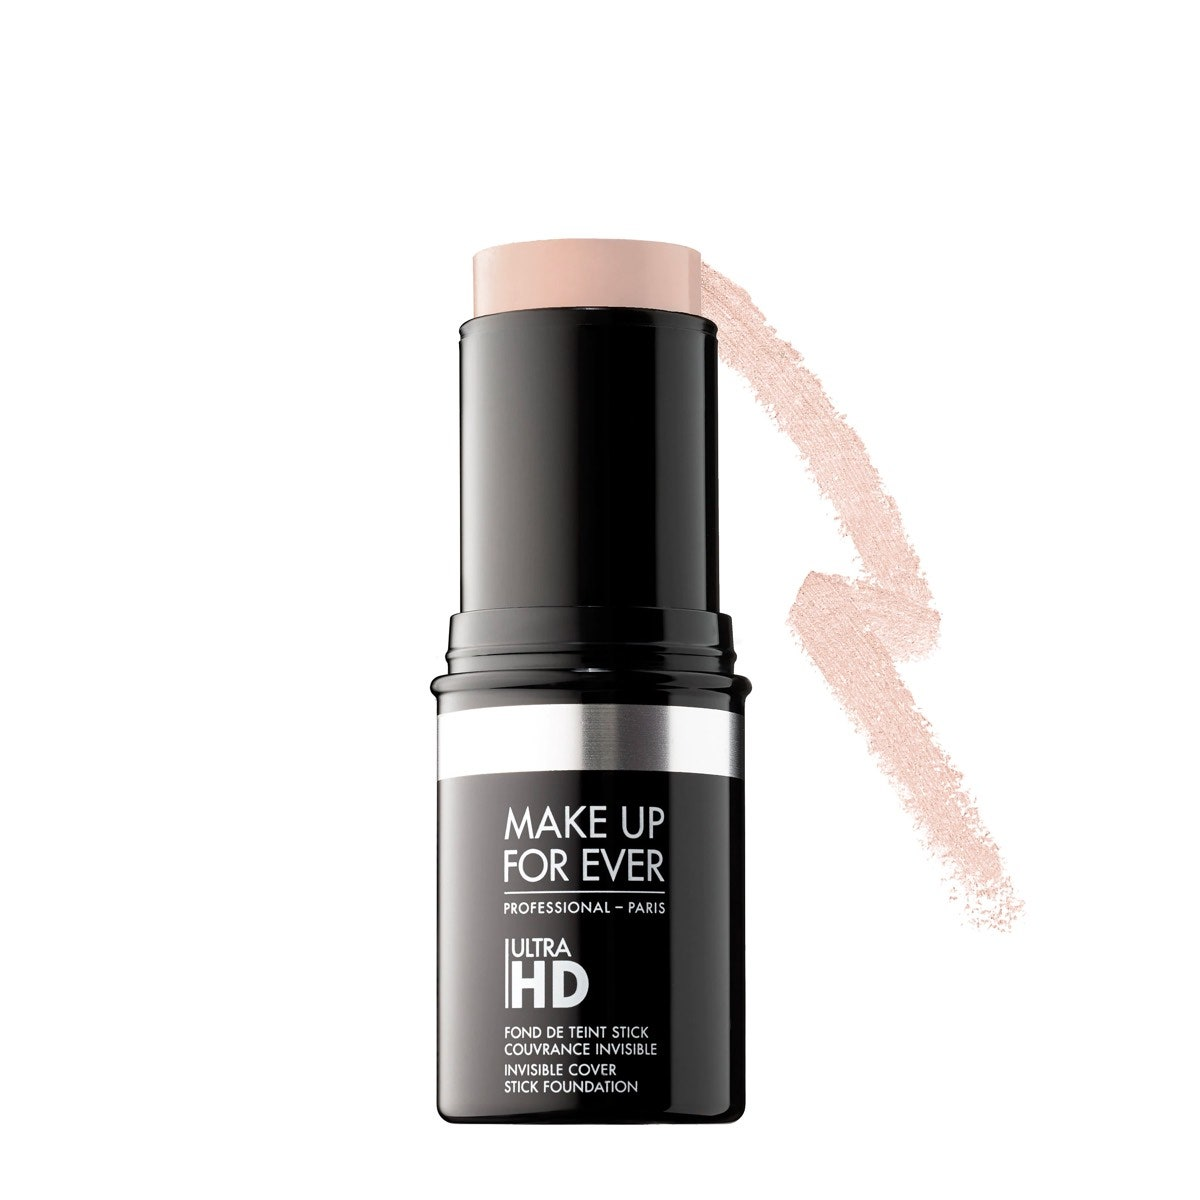 Amazing News! @glamourmag featured Make Up For Ever Ultra HD Invisible Cover Stick Foundation as one of the Best Foundations for Acne-Prone Skin. Read more: https://t.co/XbqPzaCTZA https://t.co/pNK843oEdN